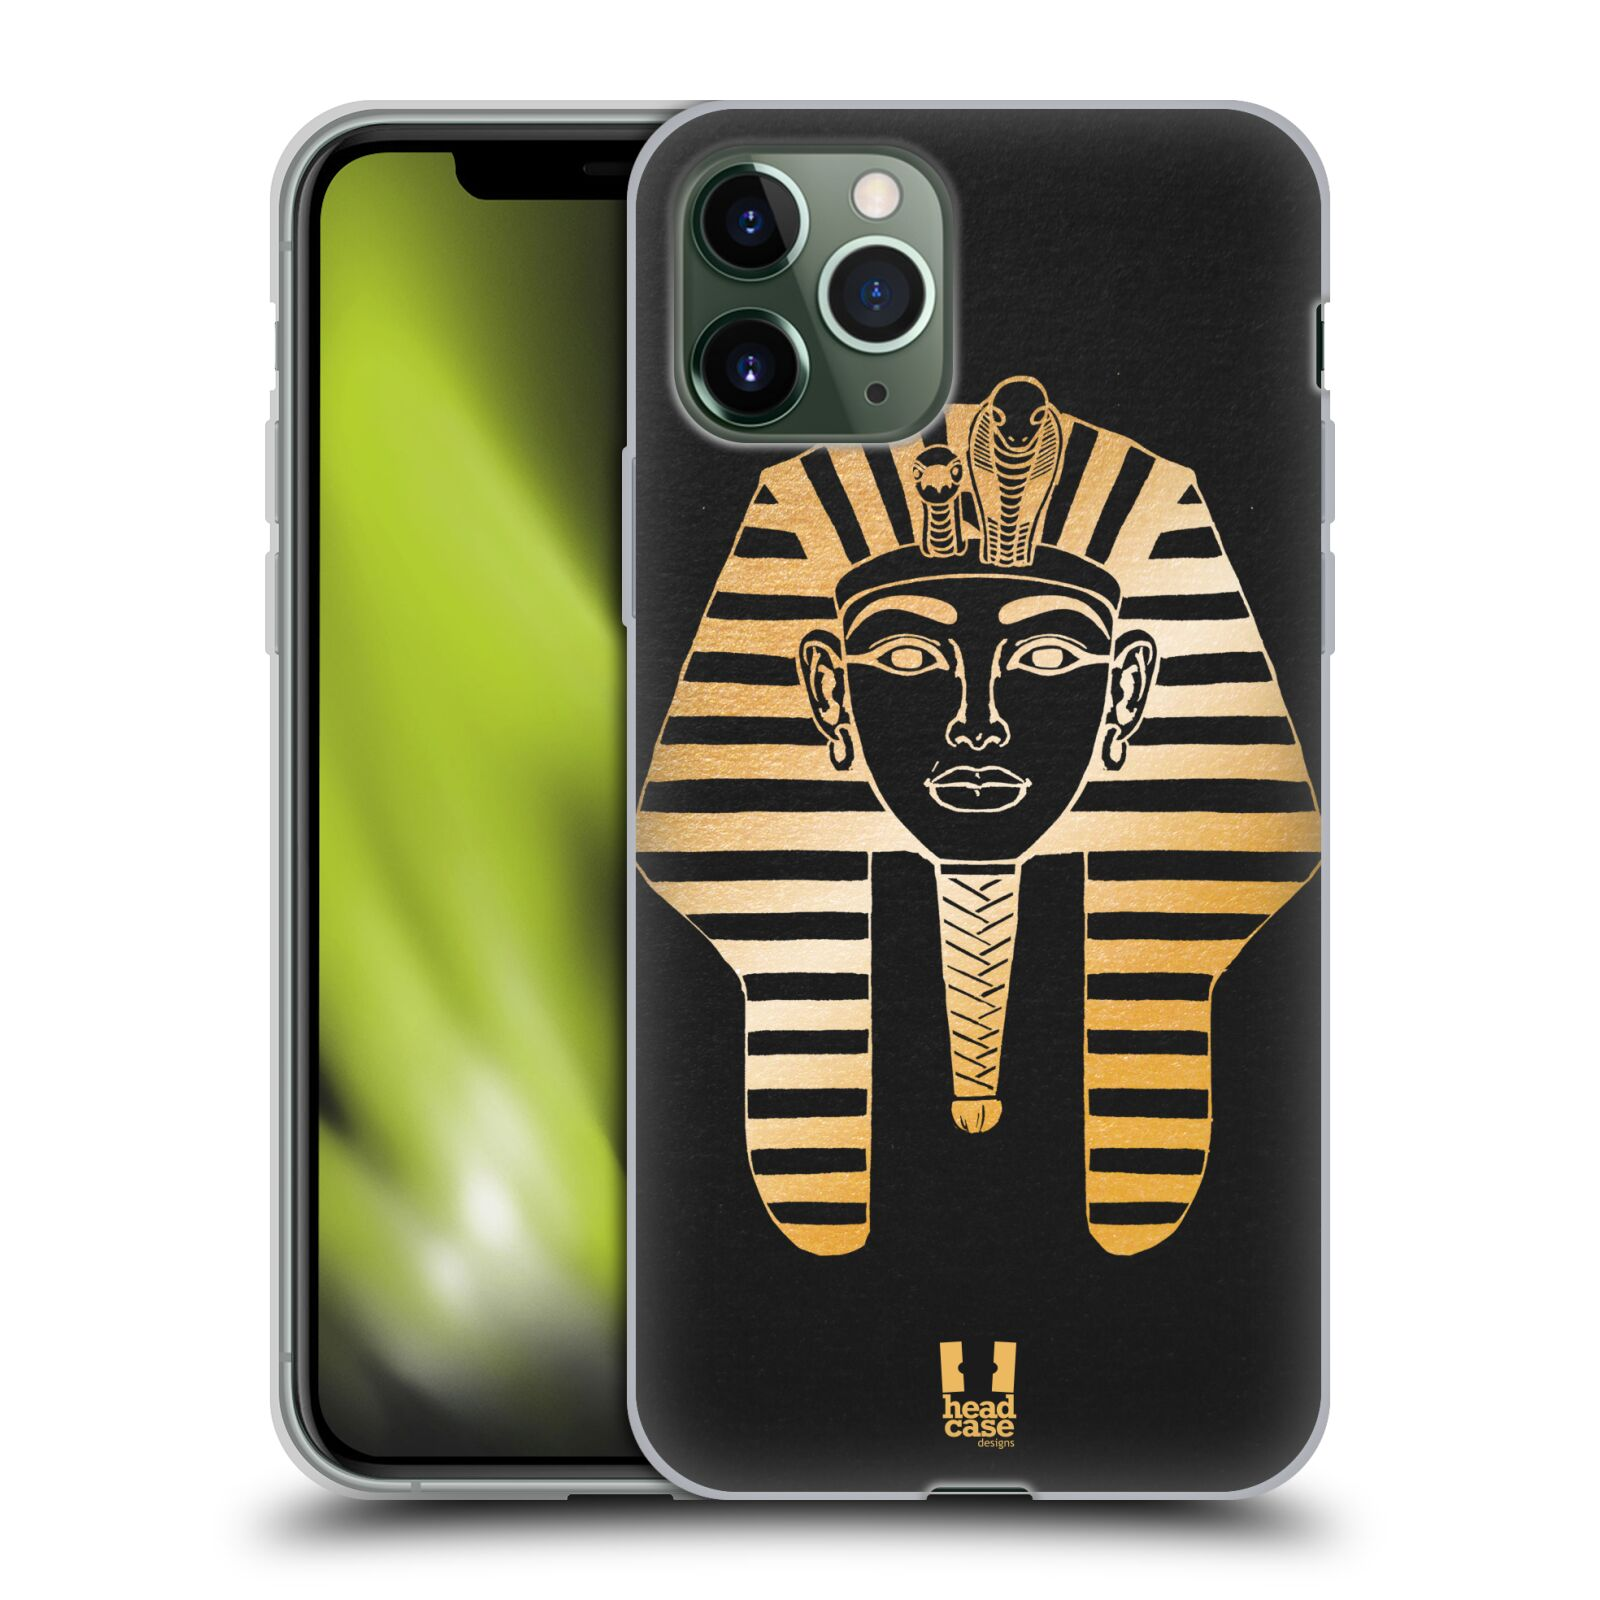 iphone servis - Silikonové pouzdro na mobil Apple iPhone 11 Pro - Head Case - EGYPT FARAON